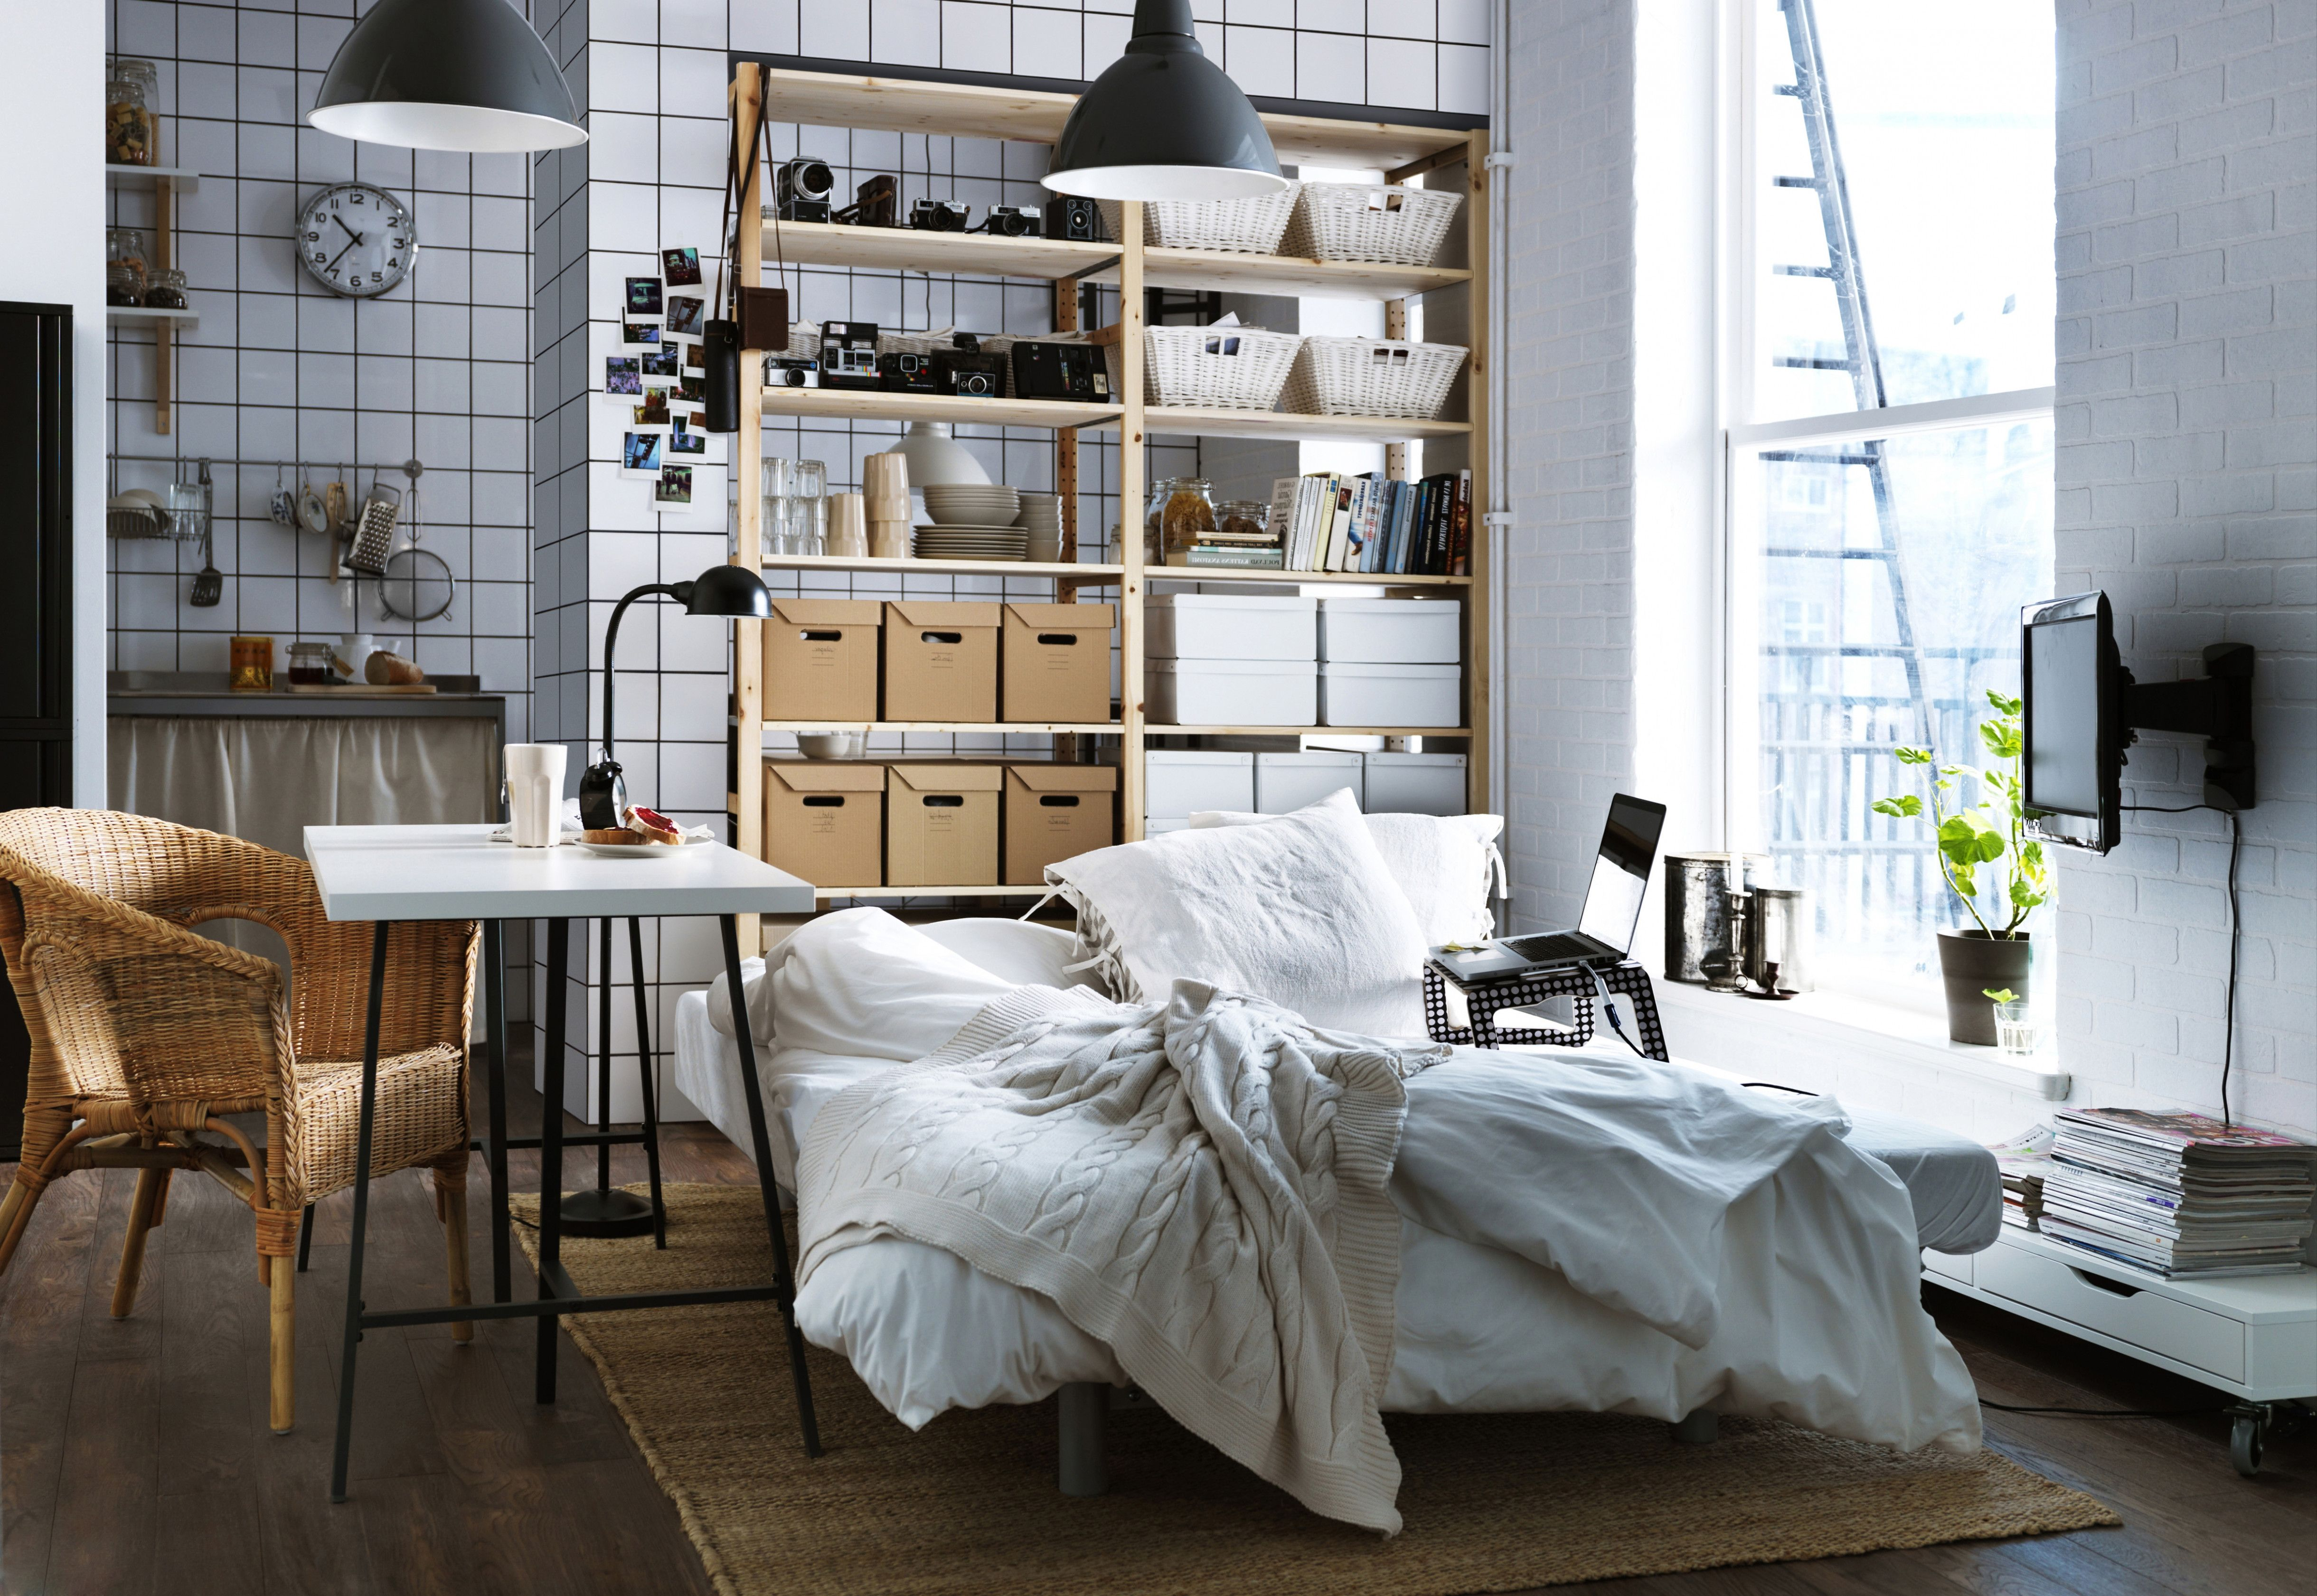 Best Fresh Awesome Bedroom Ideas With Ikea Furniture 8498 Small One Bedroom Apartment Design Ideas Hou Small Room Design Ikea Living Room Small Living Rooms